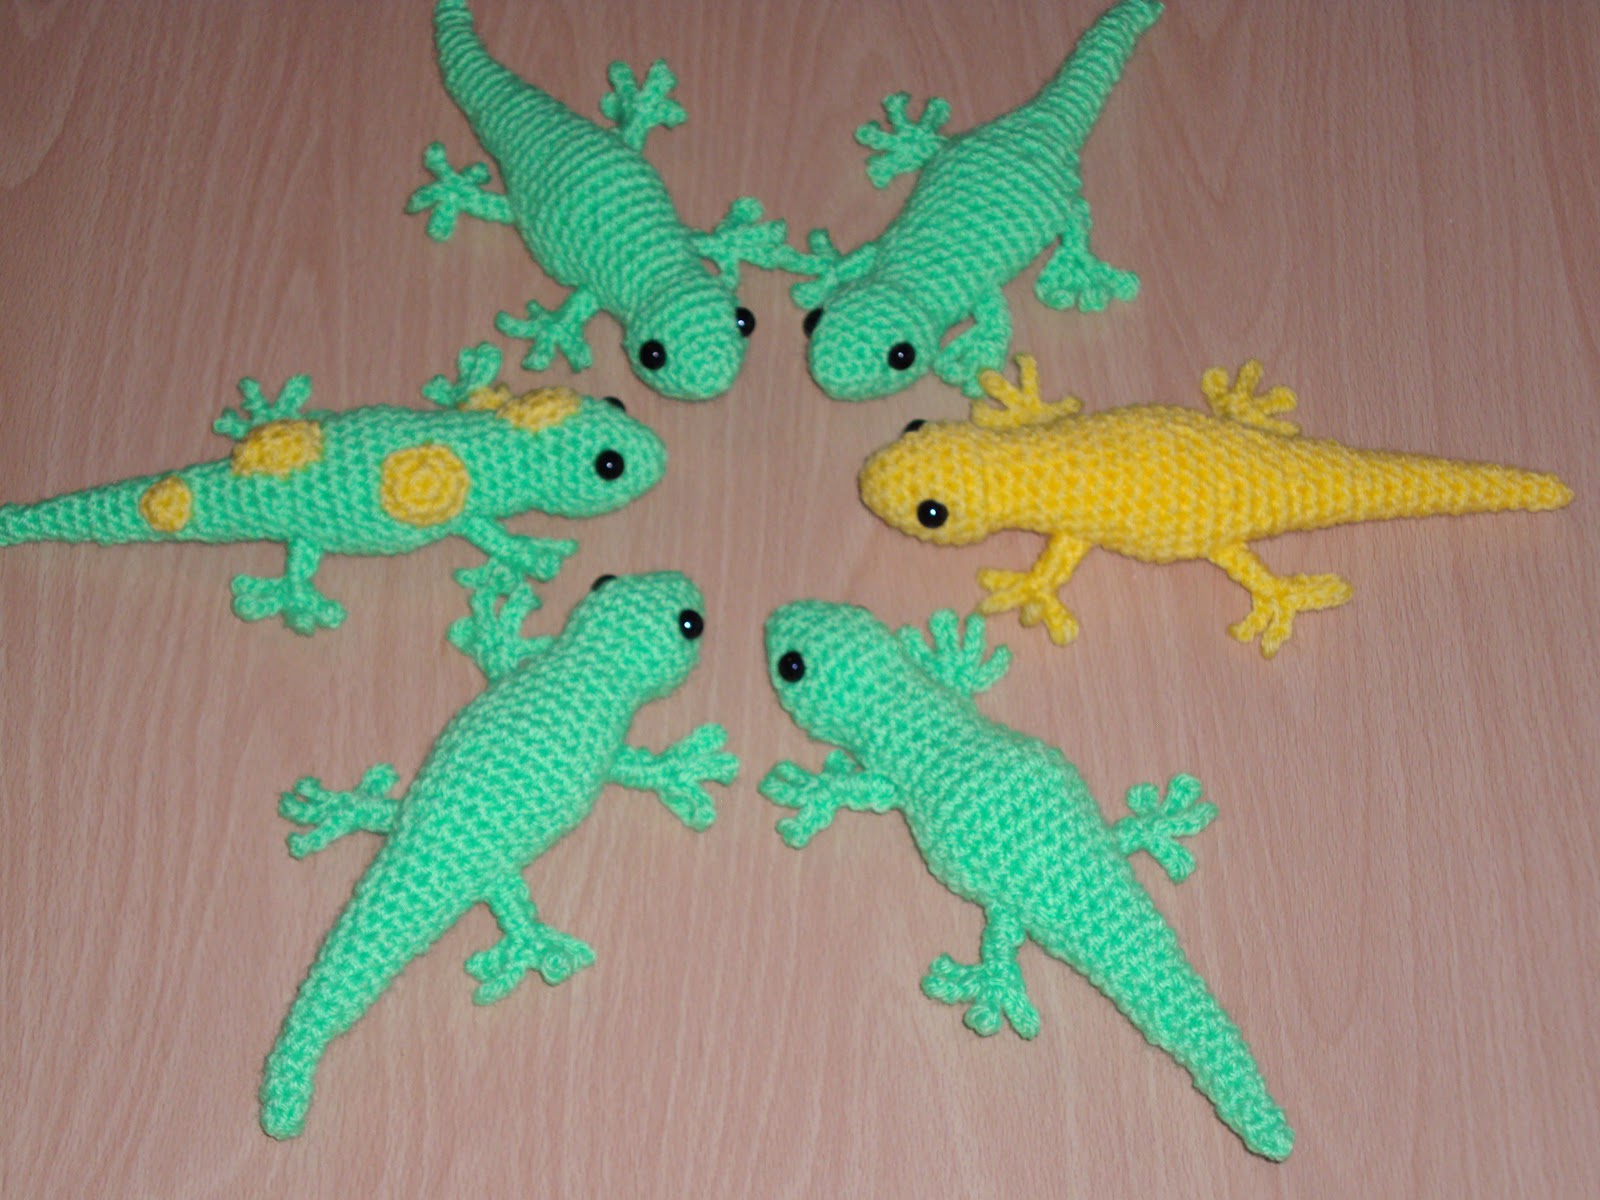 Amigurumi Gecko Pattern : Lizard Pattern Related Keywords & Suggestions - Lizard ...